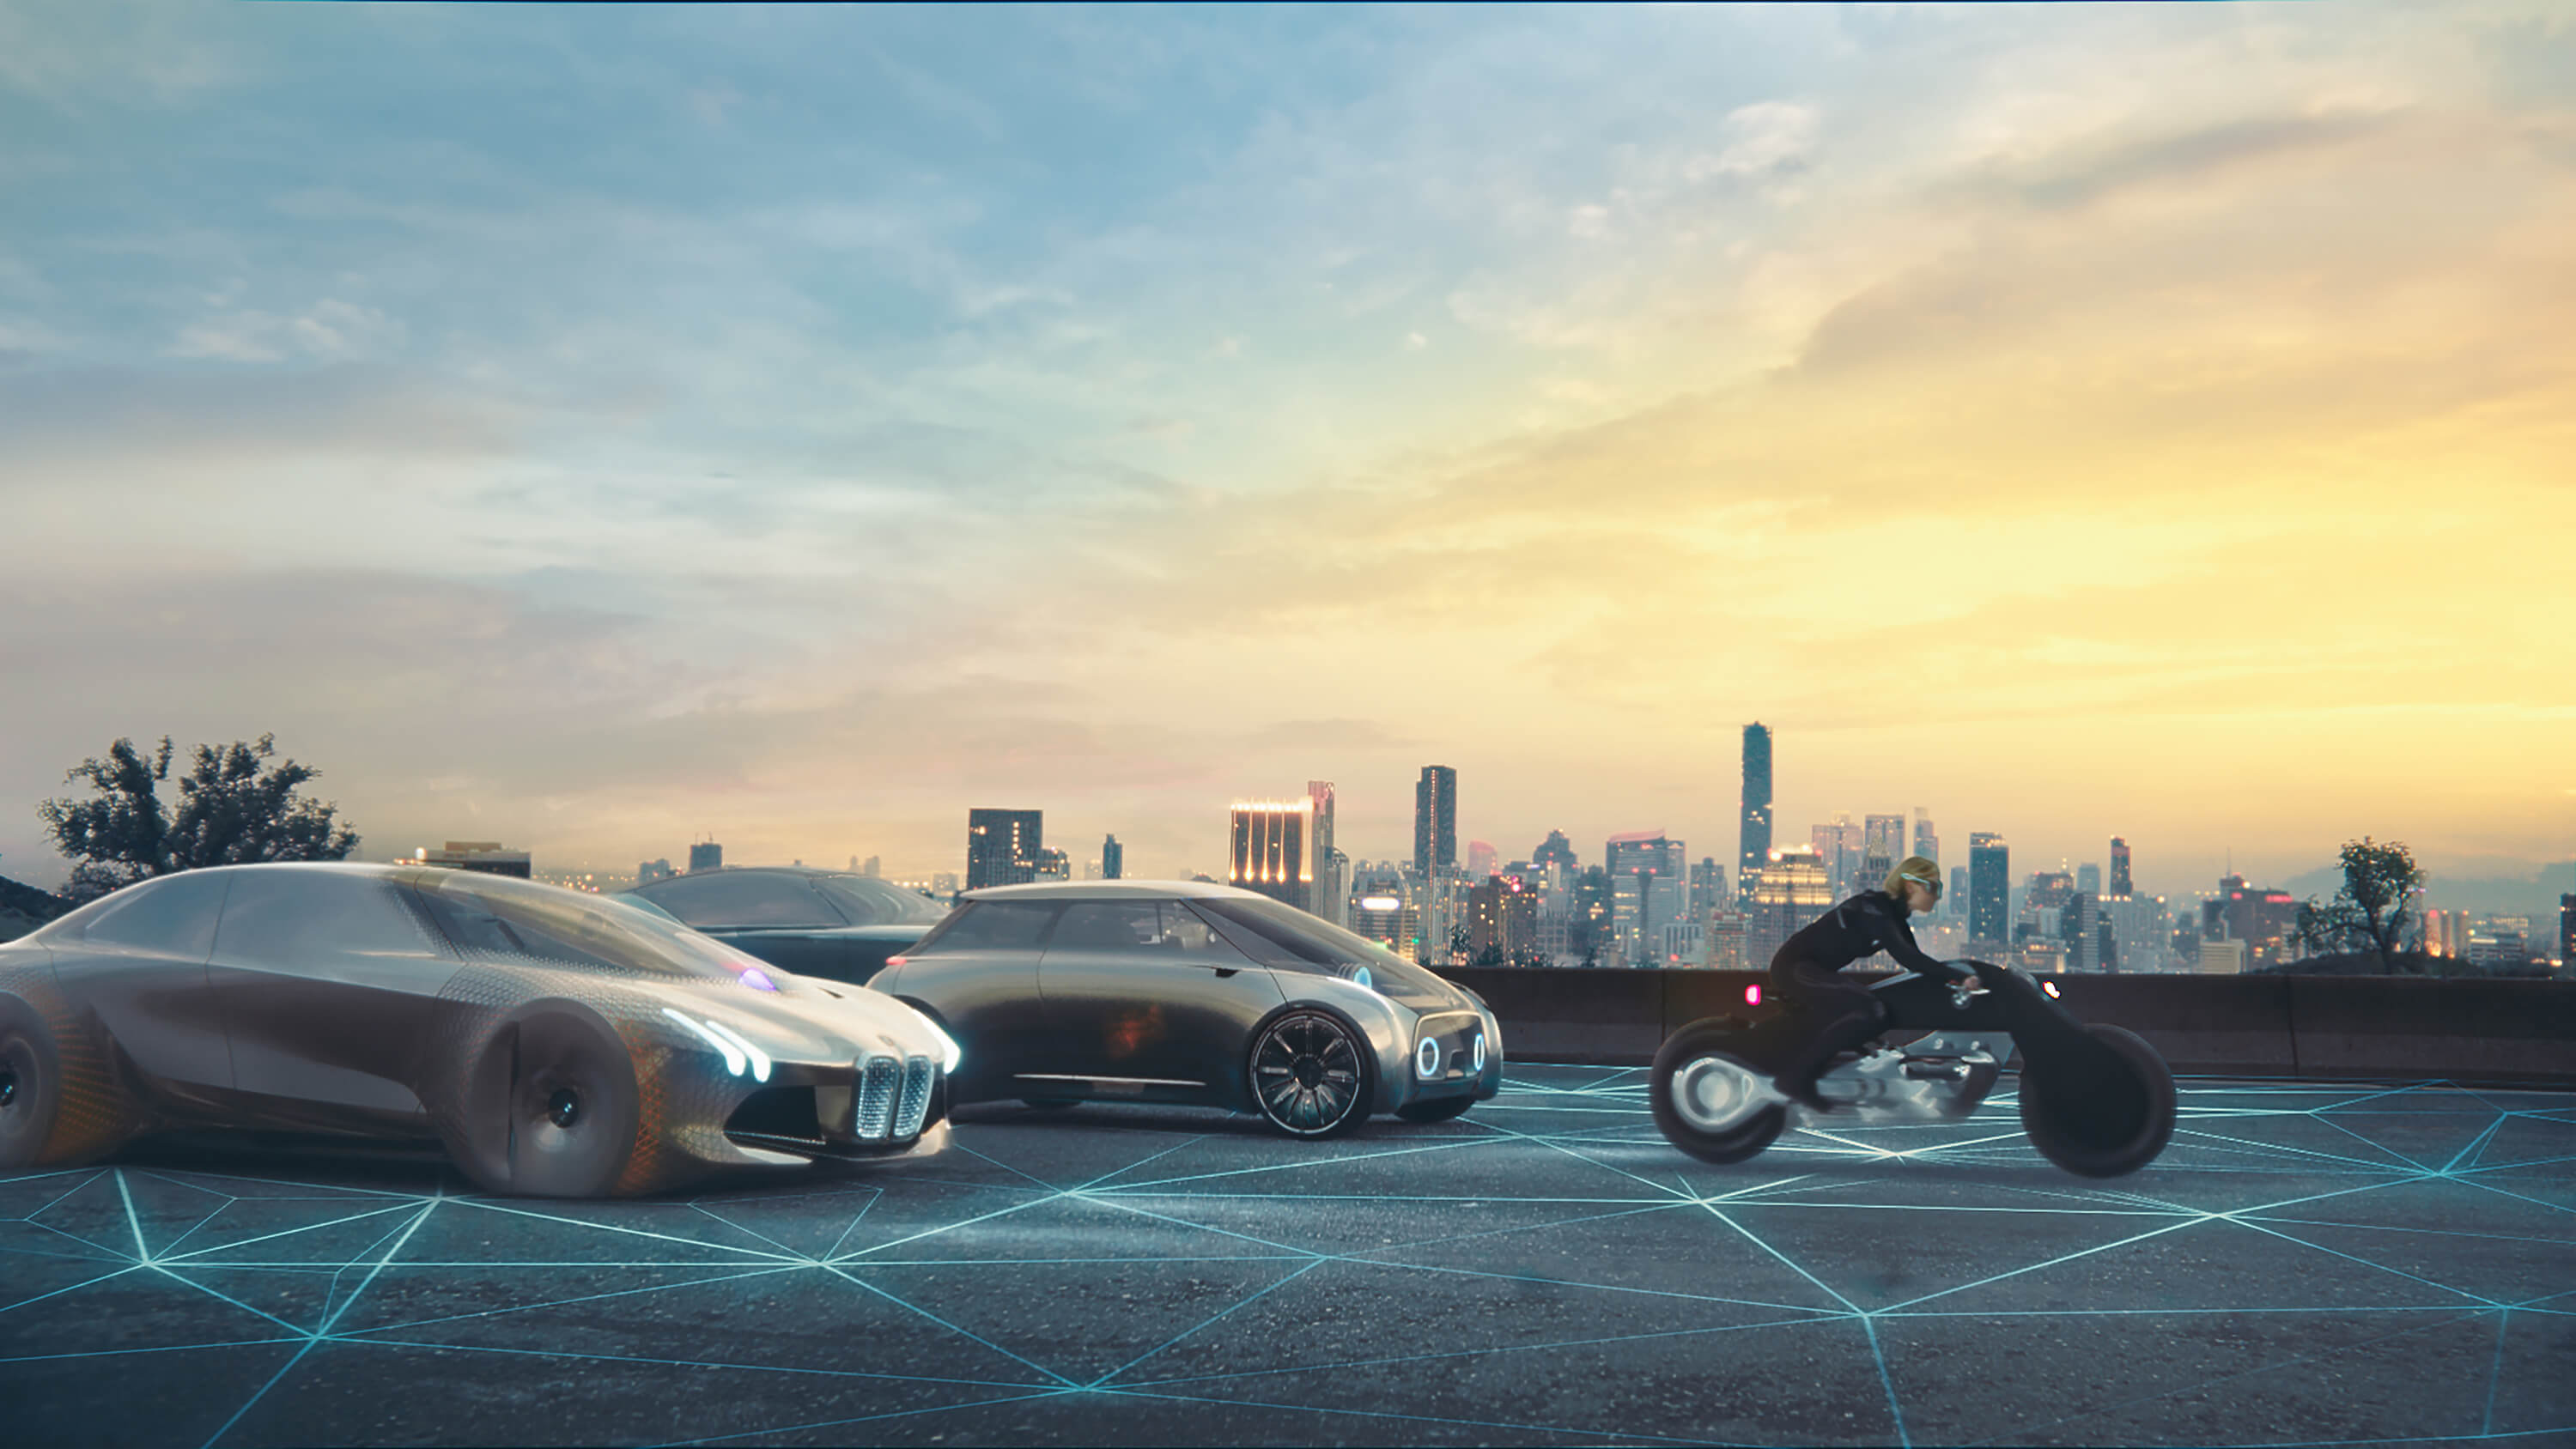 """A NEW ERA"": New BMW Group film launches online. The story of the BMW Group's 100th-anniversary corporate campaign continues."